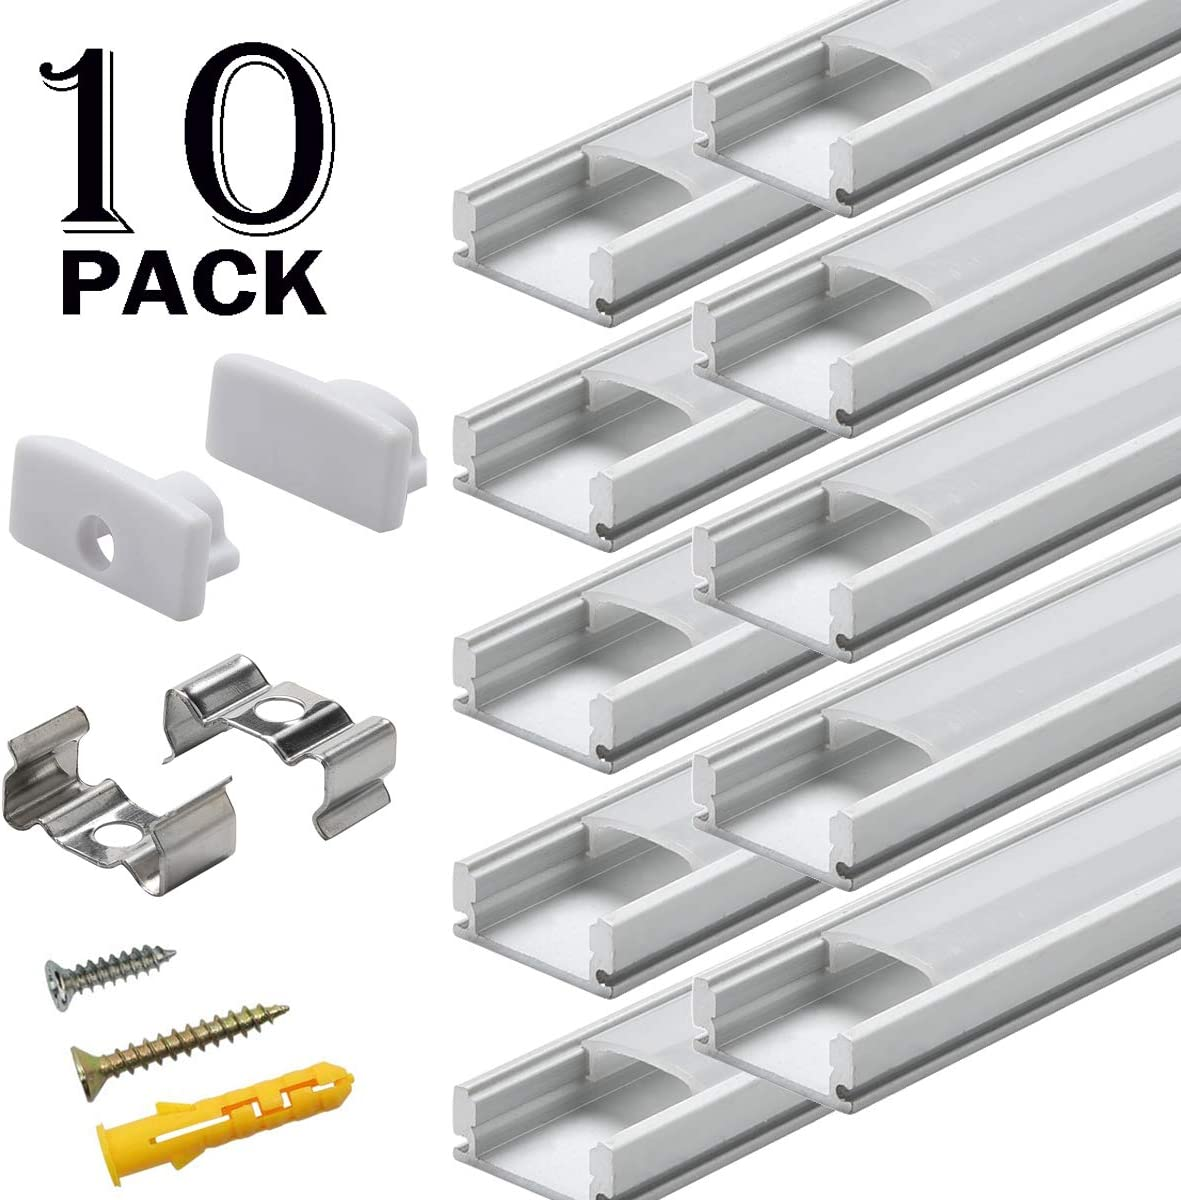 6x6.6ft LED Strip Aluminum Channel Starlandled LED Track Profile System with Milky Cover Diffusers End Caps and Mounting Clips for LED Strip Light Easy Installations